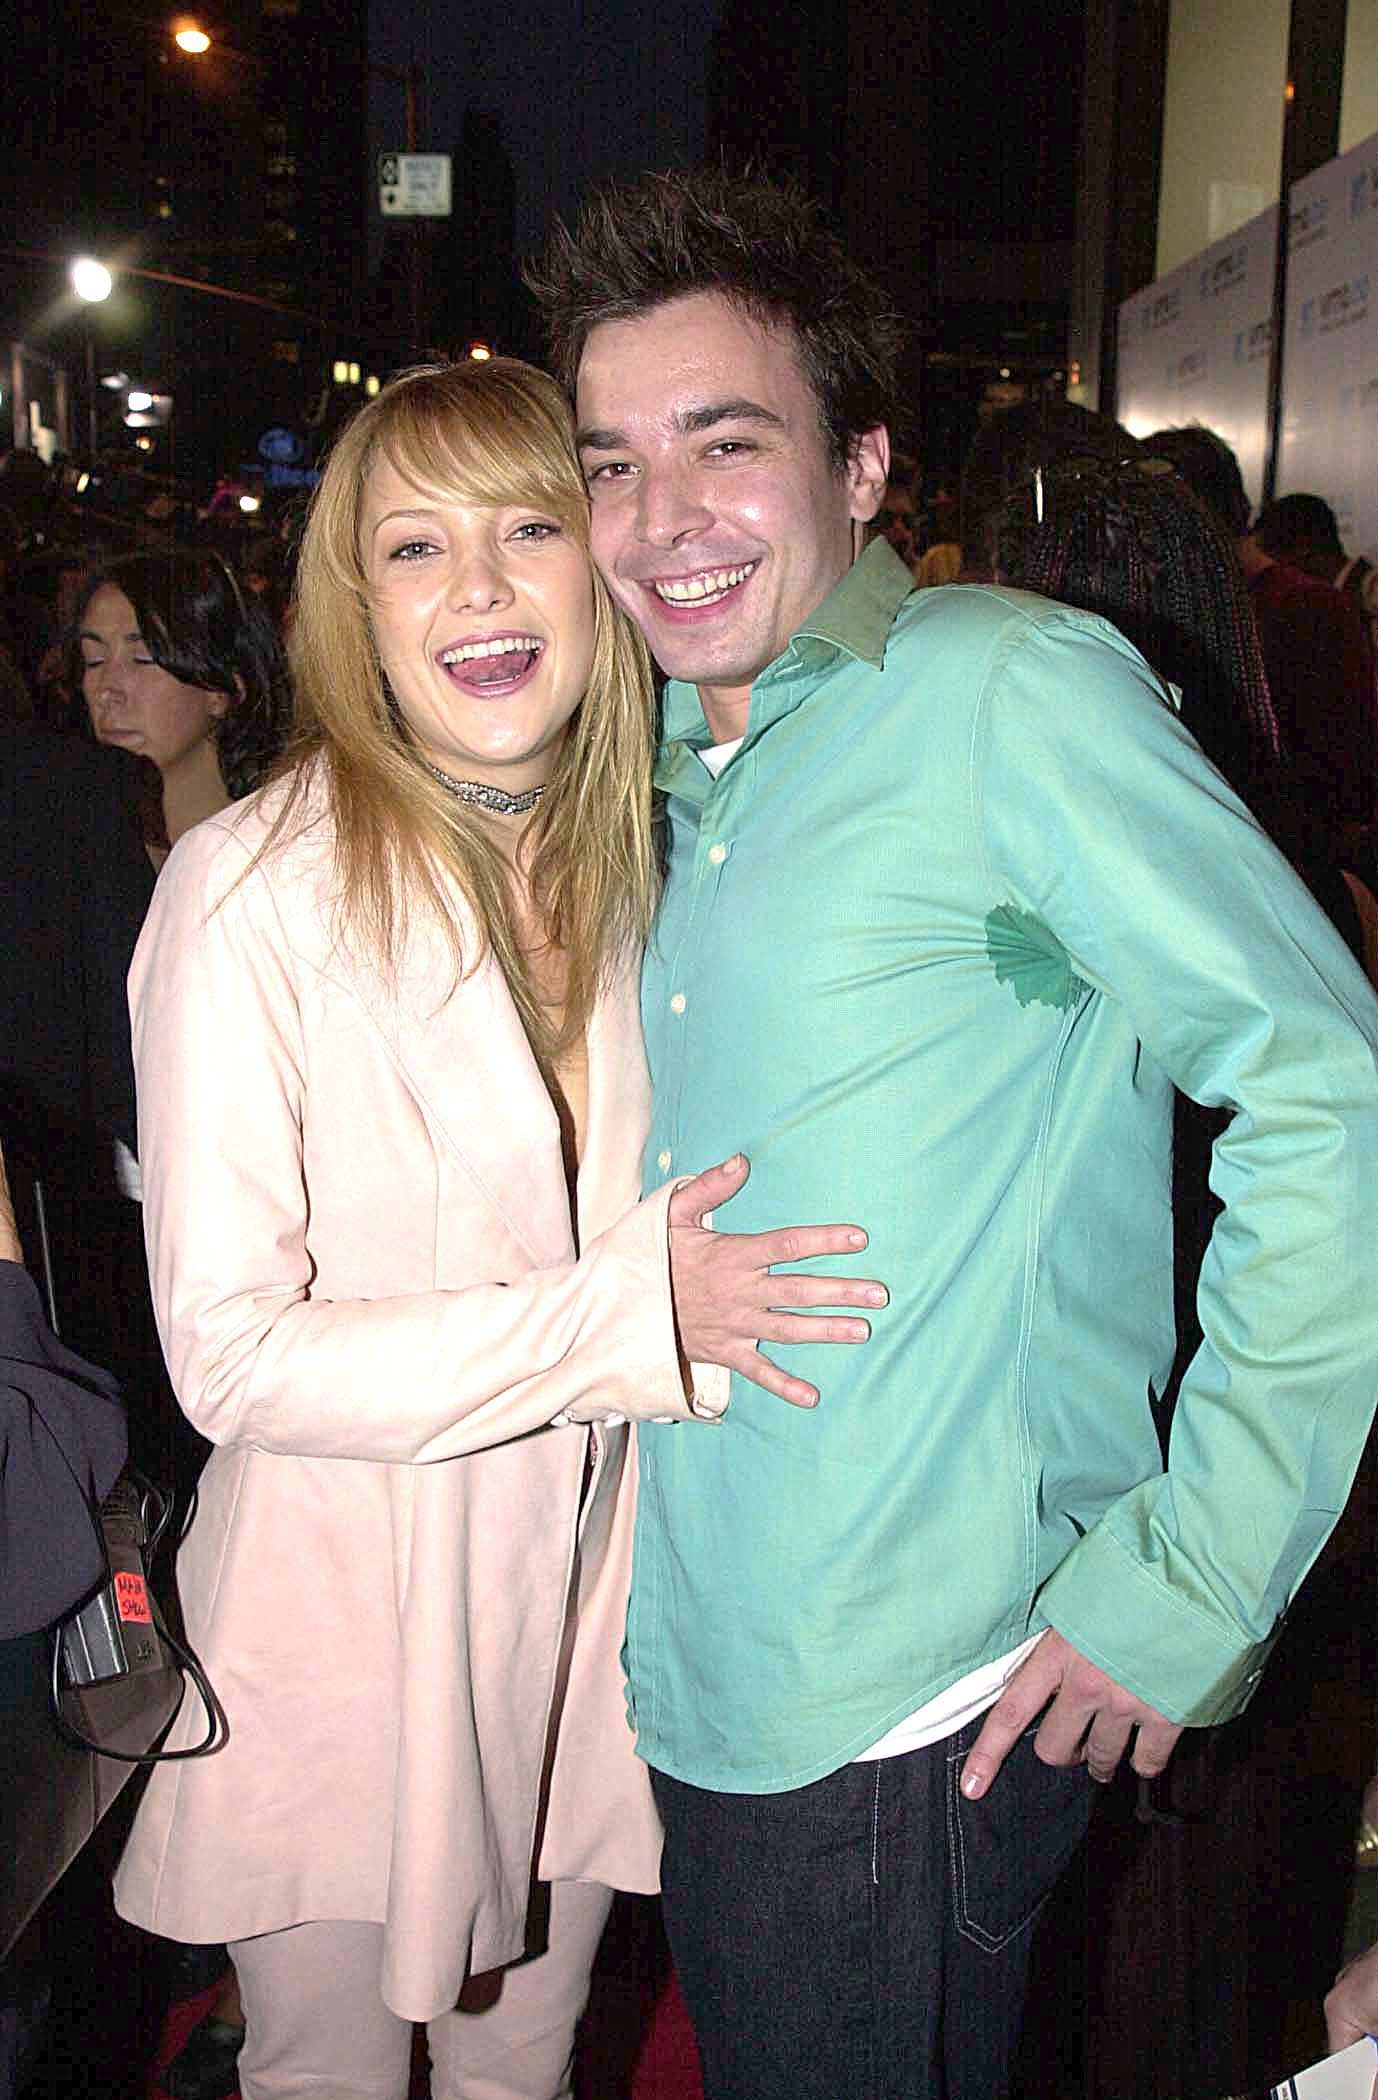 Kate Hudson and Jimmy Fallon attend the 2000 MTV Video Music Awards at Radio City Music Hall in New York City.